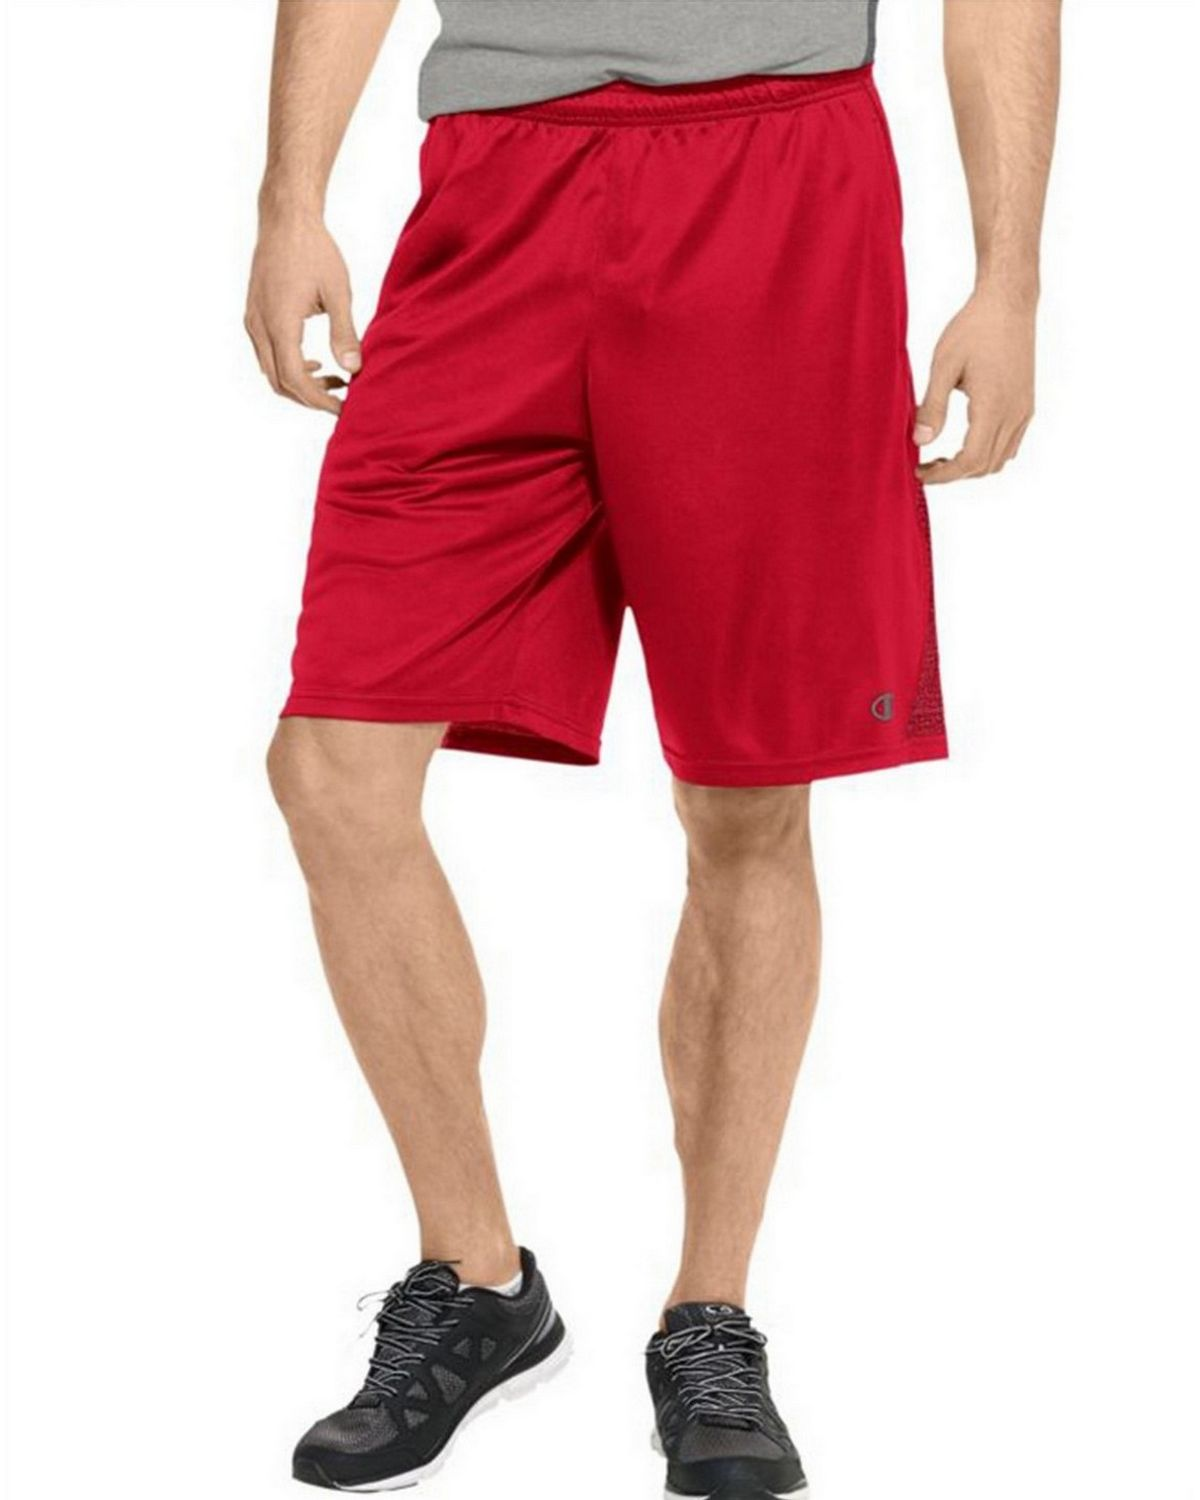 Champion 86703 Vapor PowerTrain Knit Shorts - Champion Scarlet - L 86703